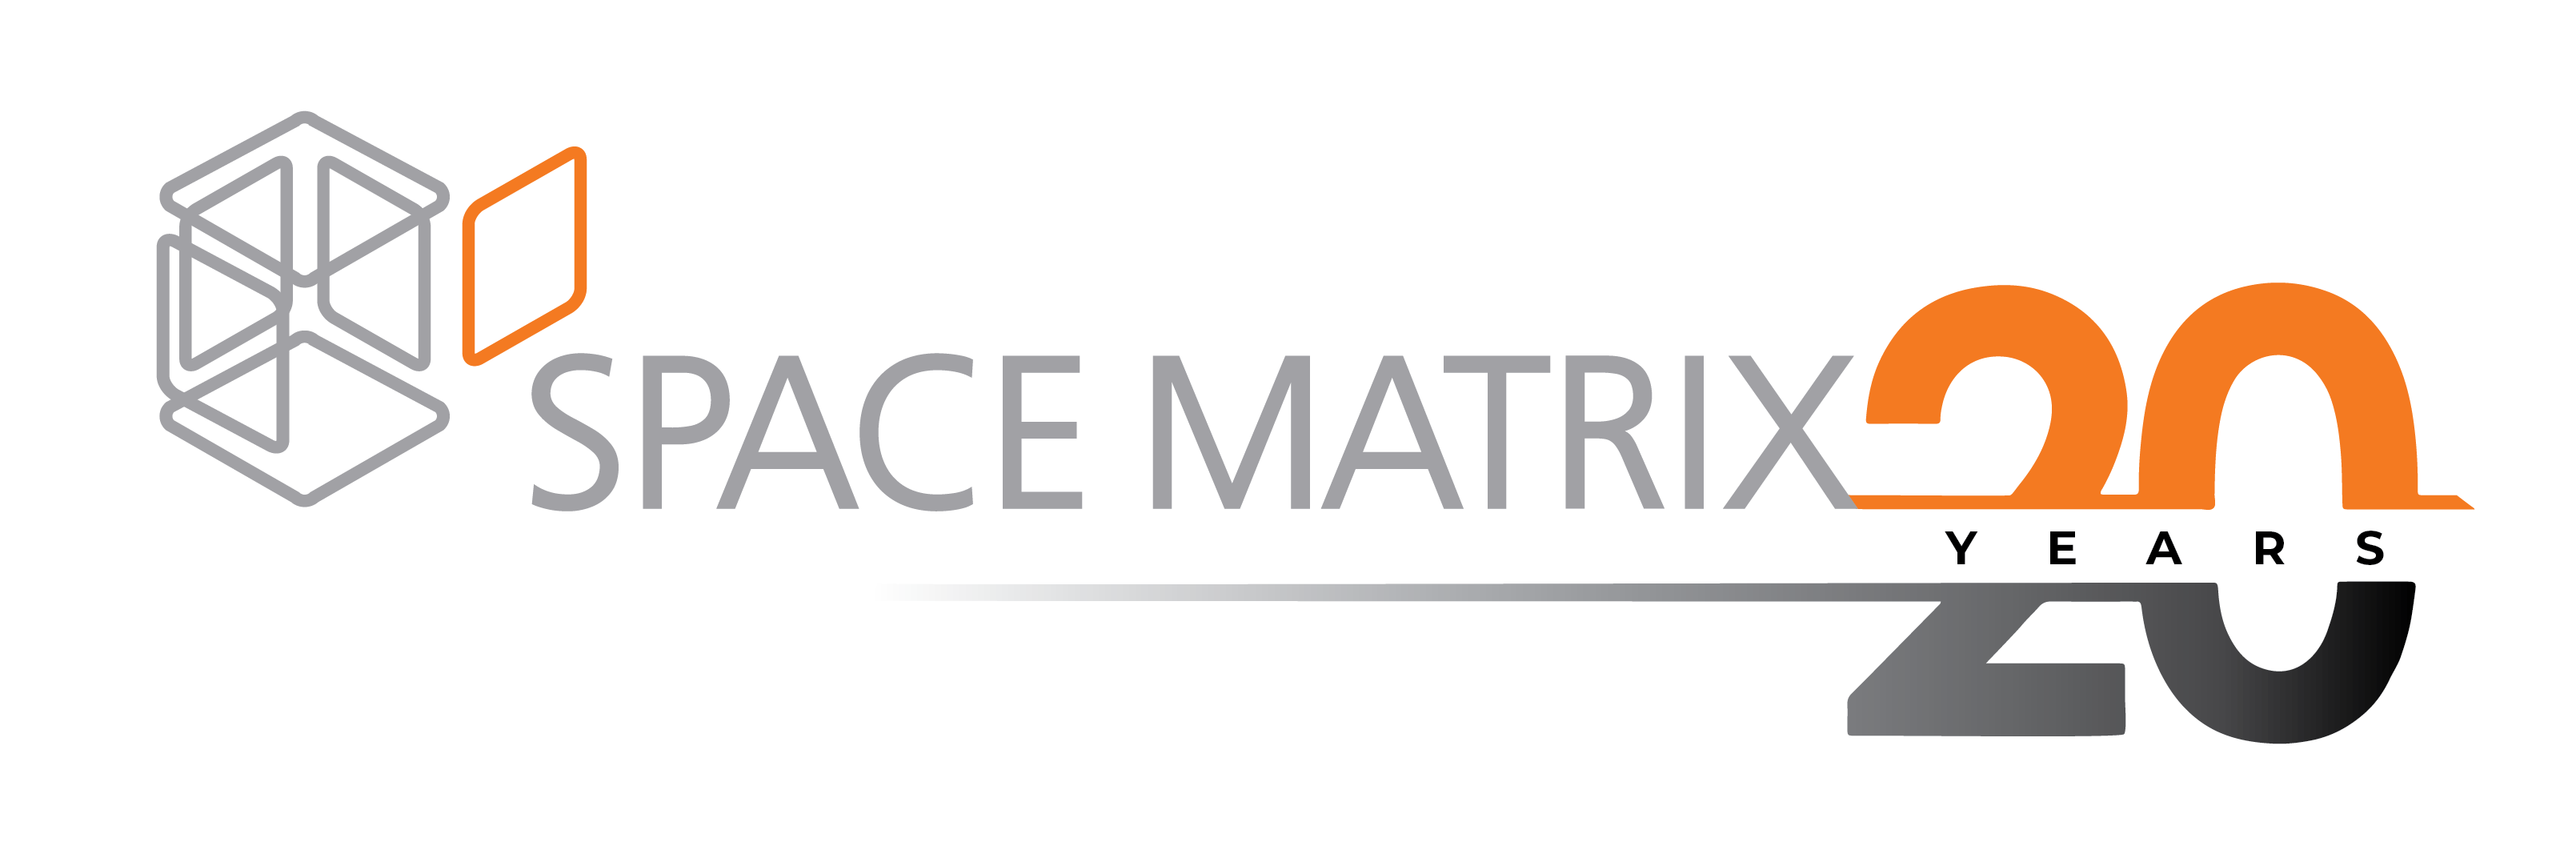 Space Matrix 20th Logo.png